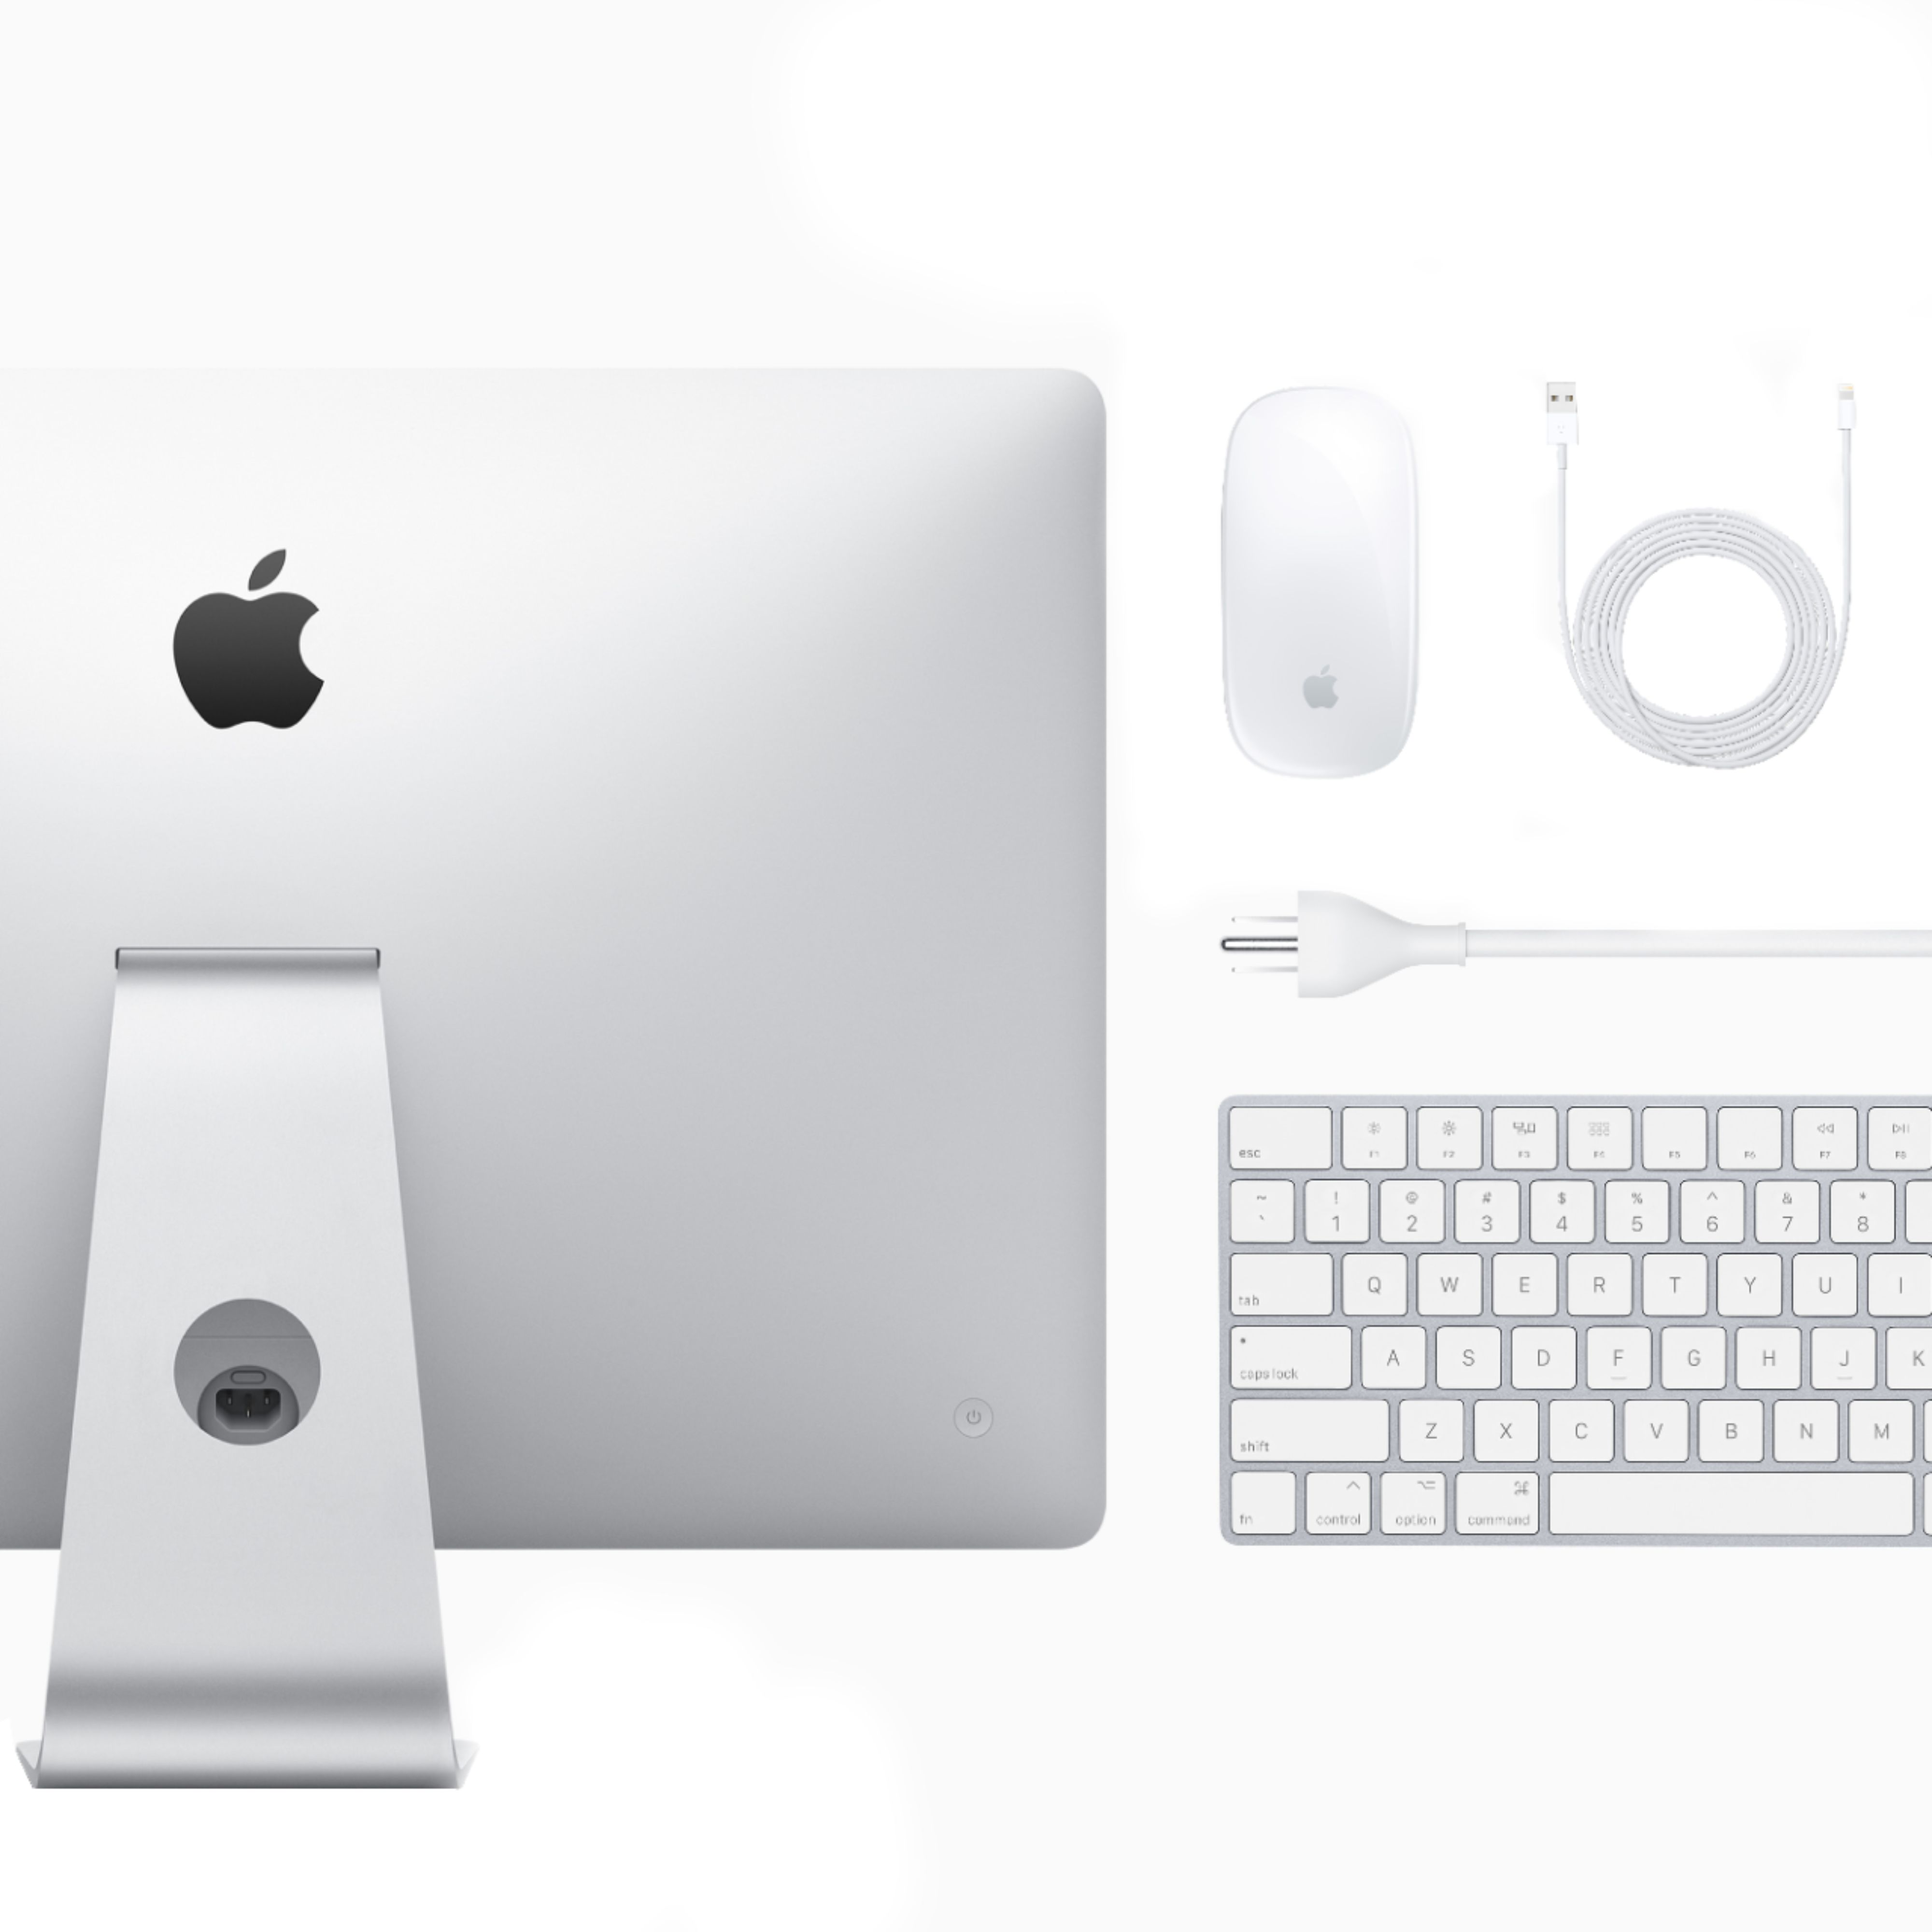 "Alt View Zoom 13. Apple - 27"" iMac® with Retina 5k display - Intel Core i5 (3.1GHz) - 8GB Memory - 1TB Fusion Drive - Silver."